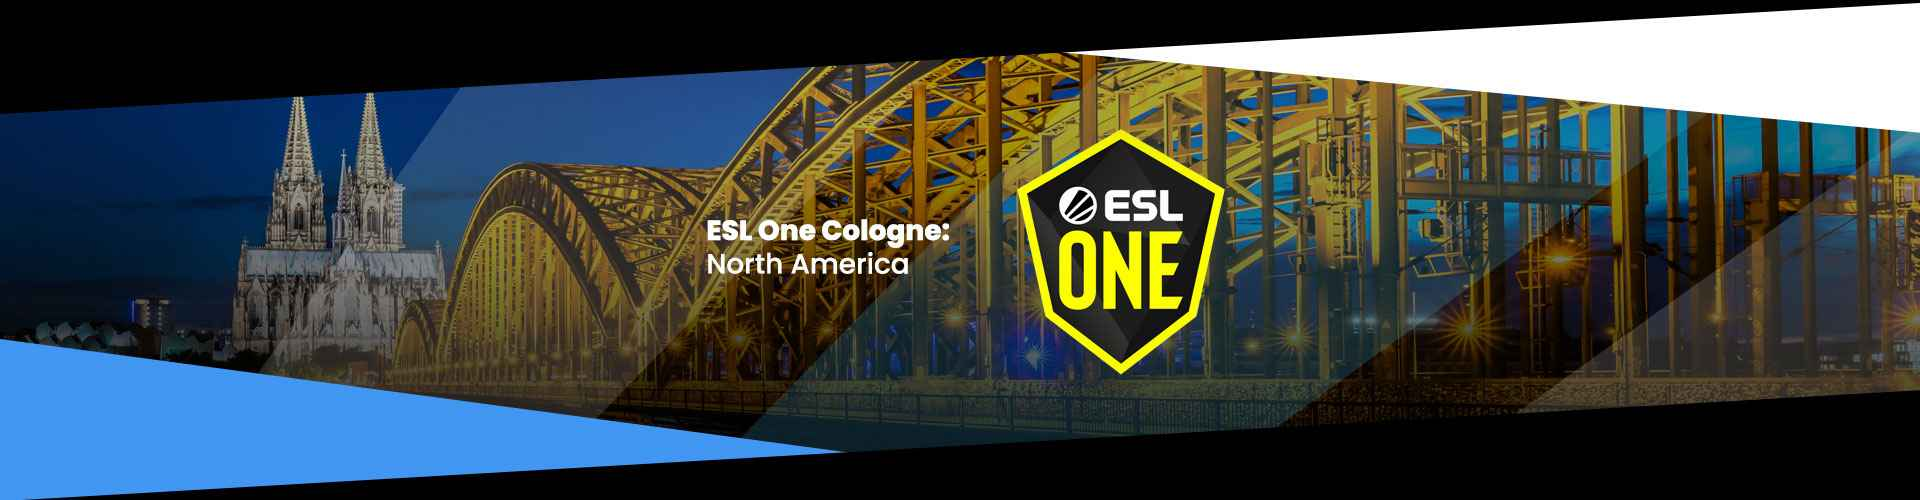 Tournament page for ESL One Cologne Online: North America.